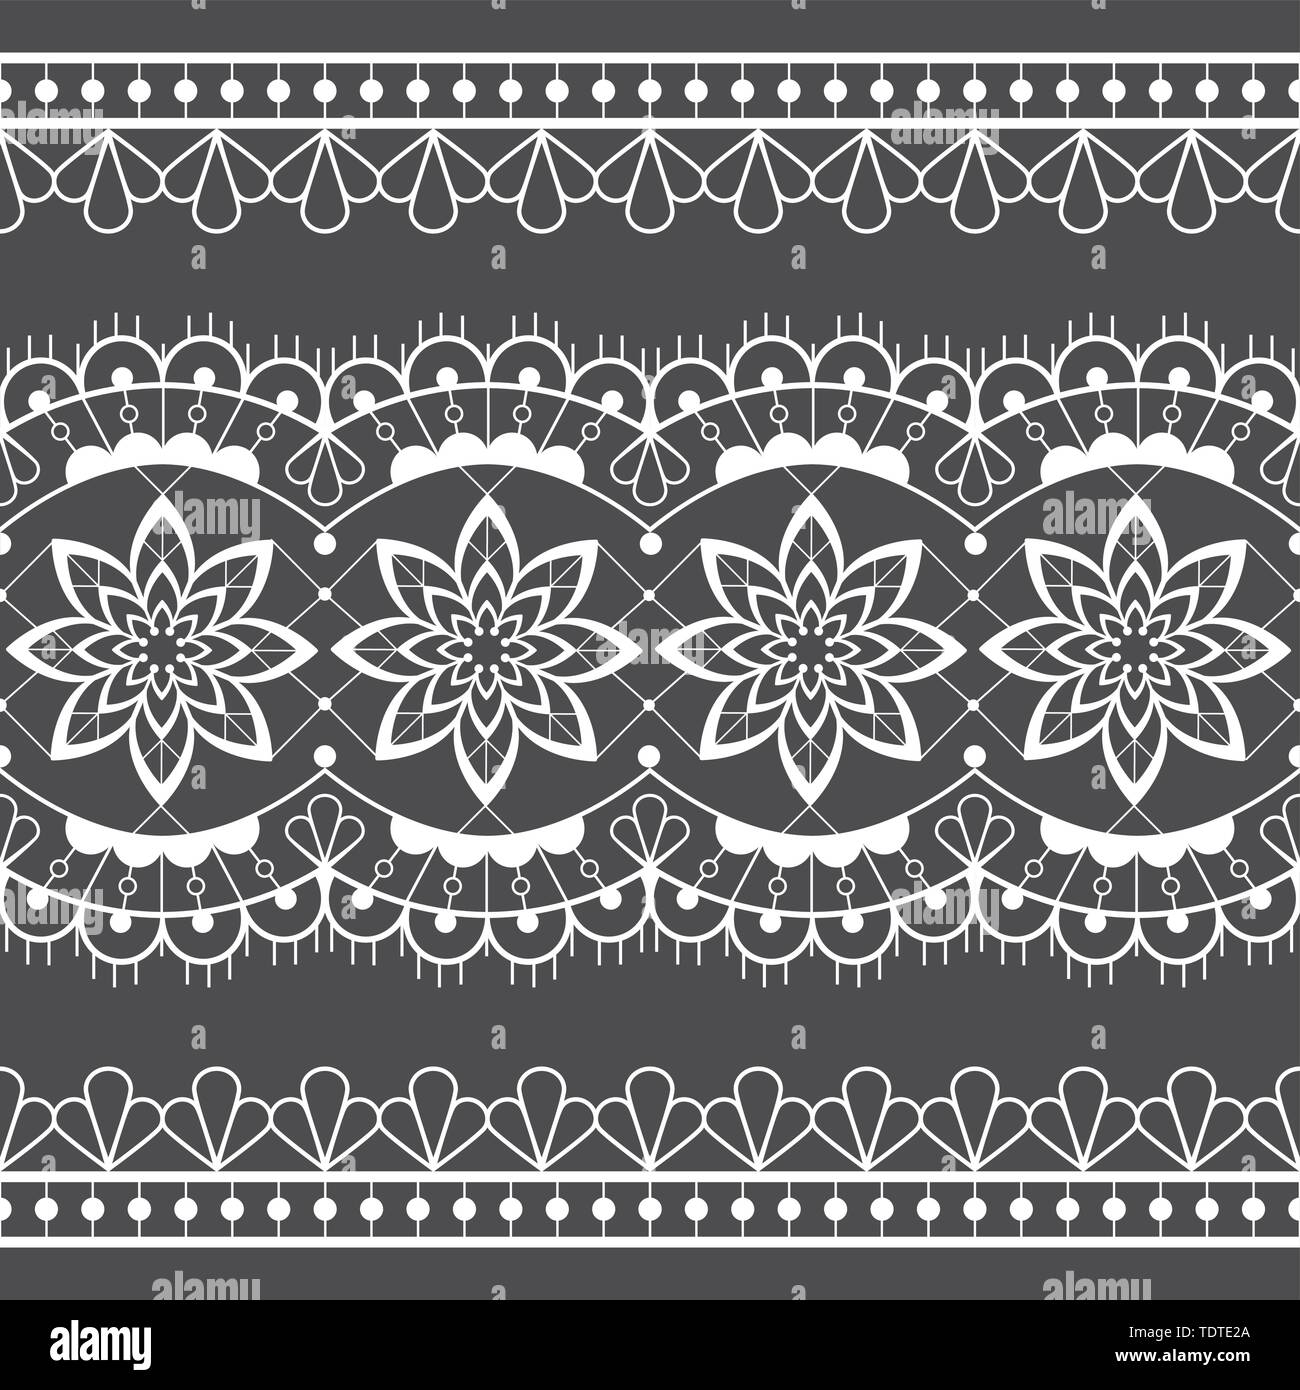 Seamless Lace Pattern Royalty Free Cliparts, Vectors, And Stock  Illustration. Image 38729246.   1390x1300